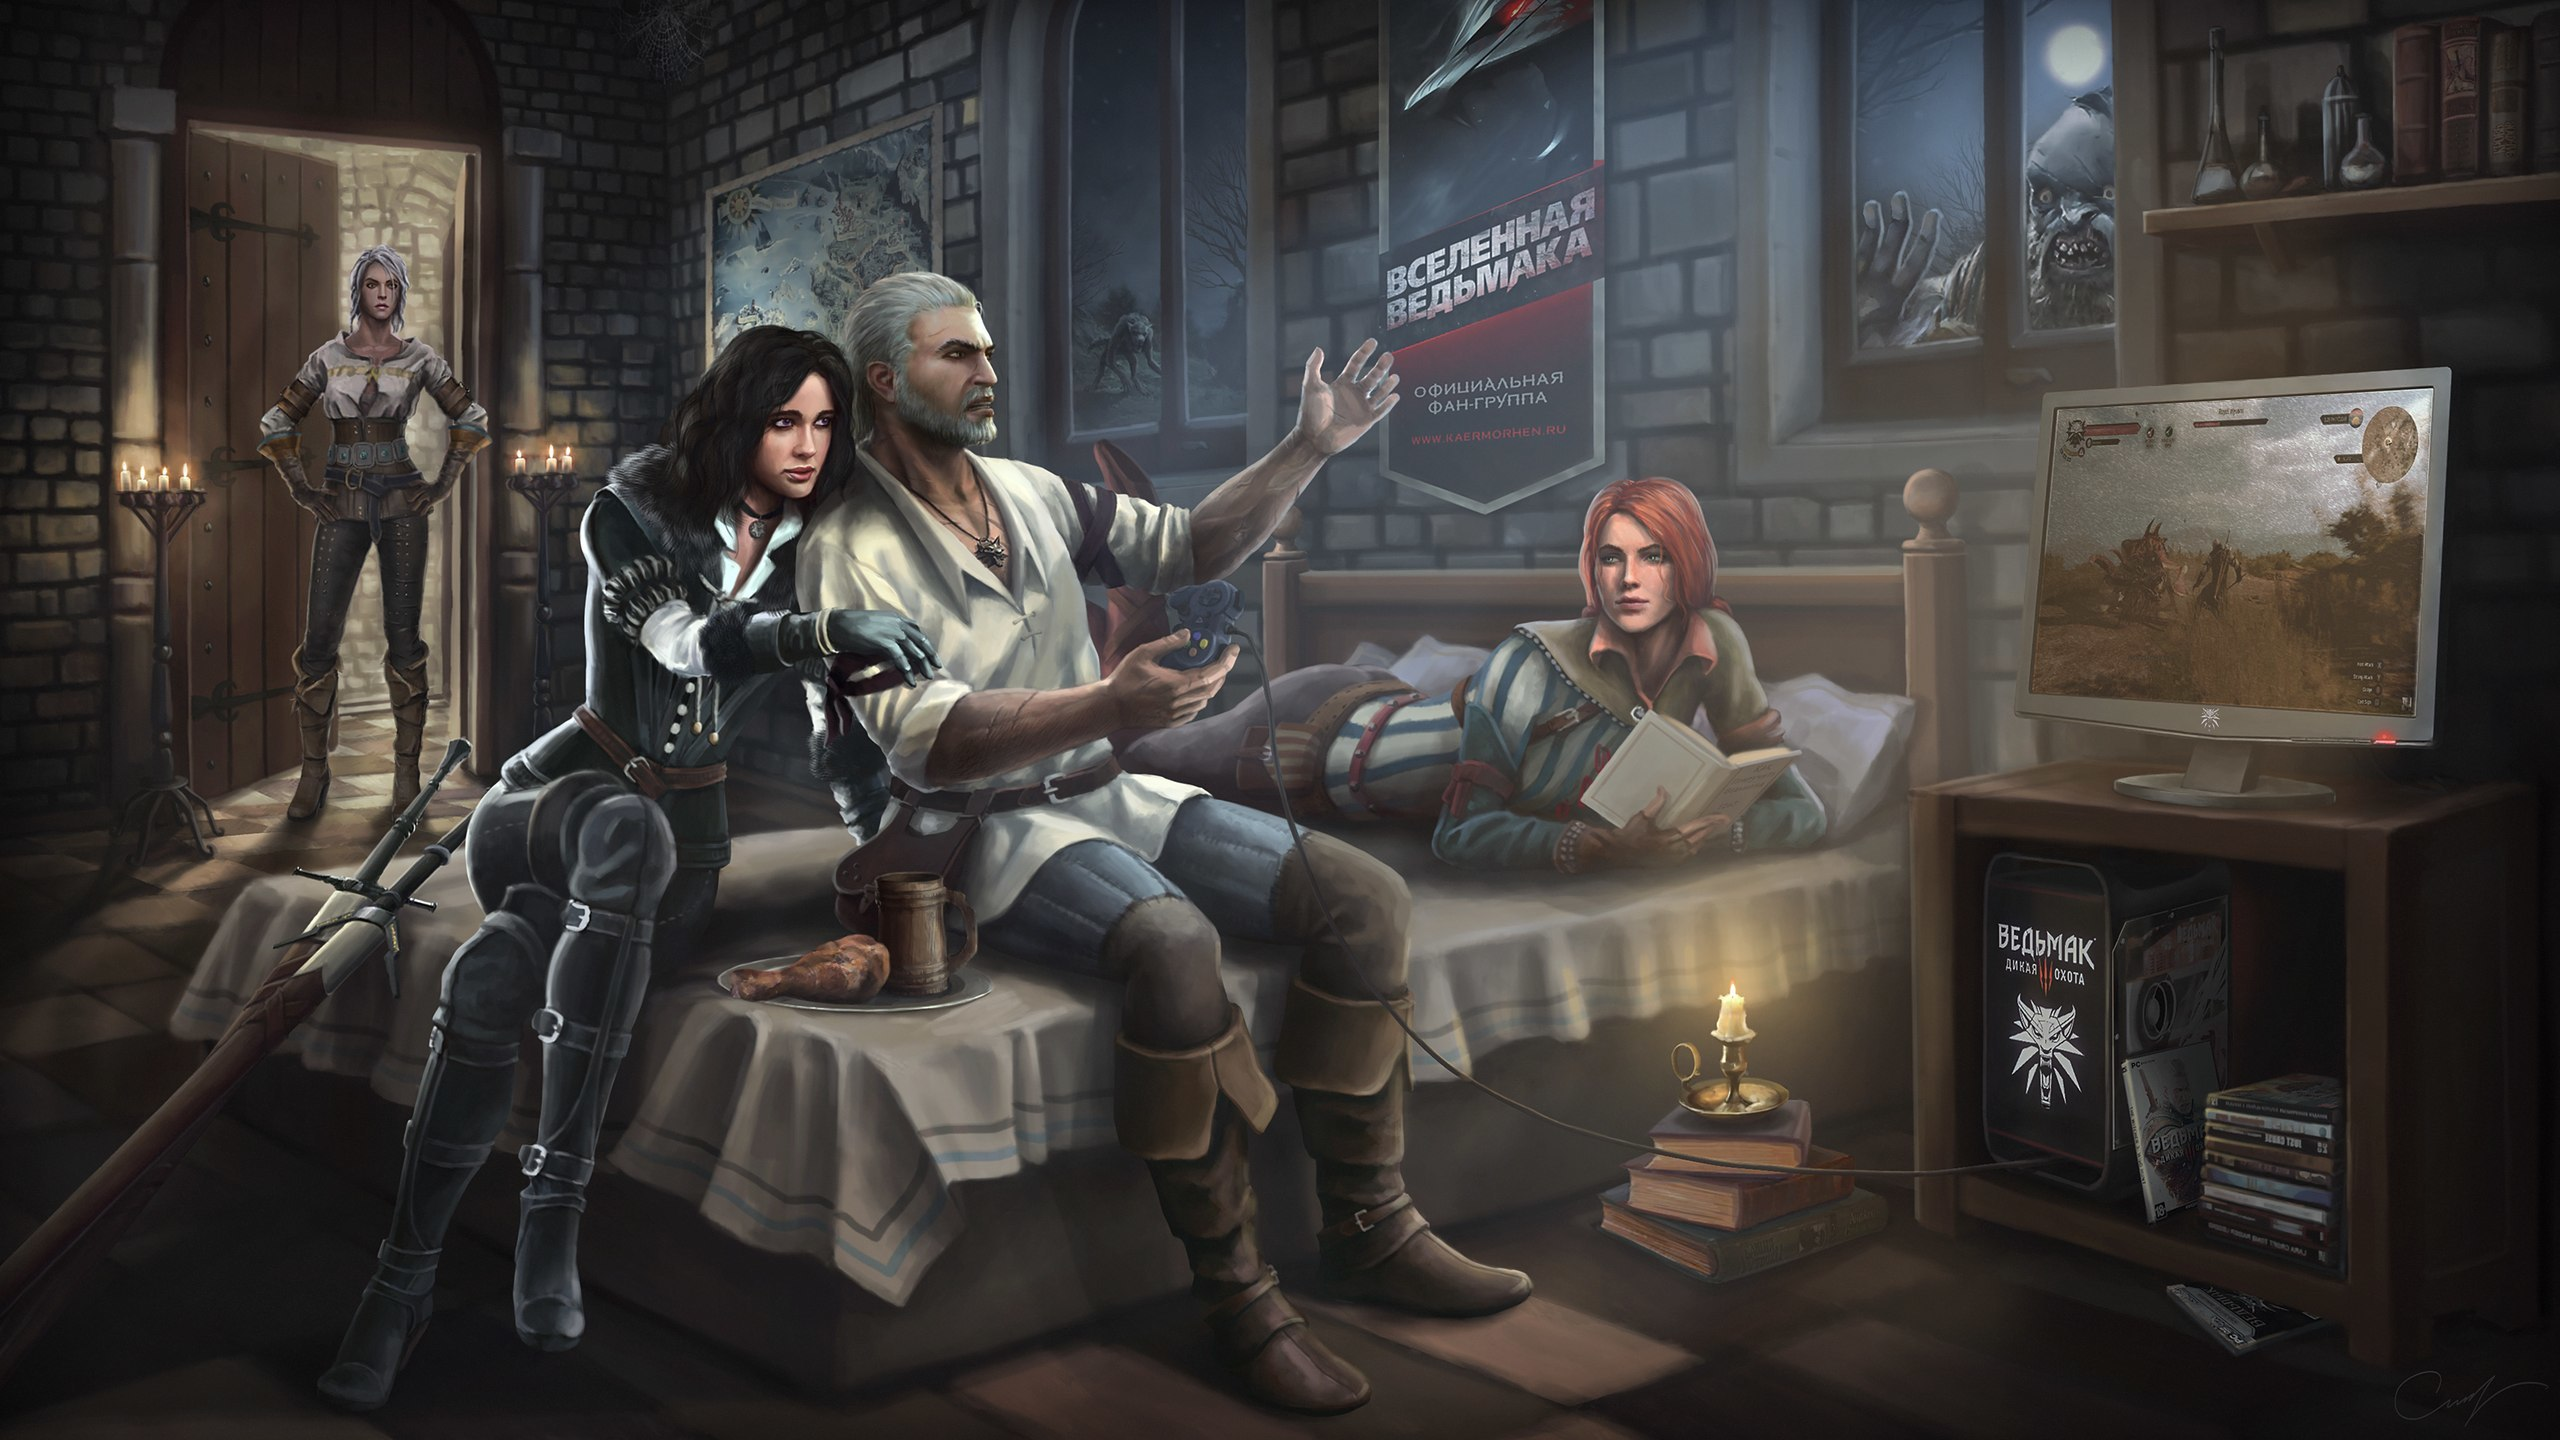 Download Exclusive The Witcher : Wild Hunt Wallpapers  GeForce 2560x1440